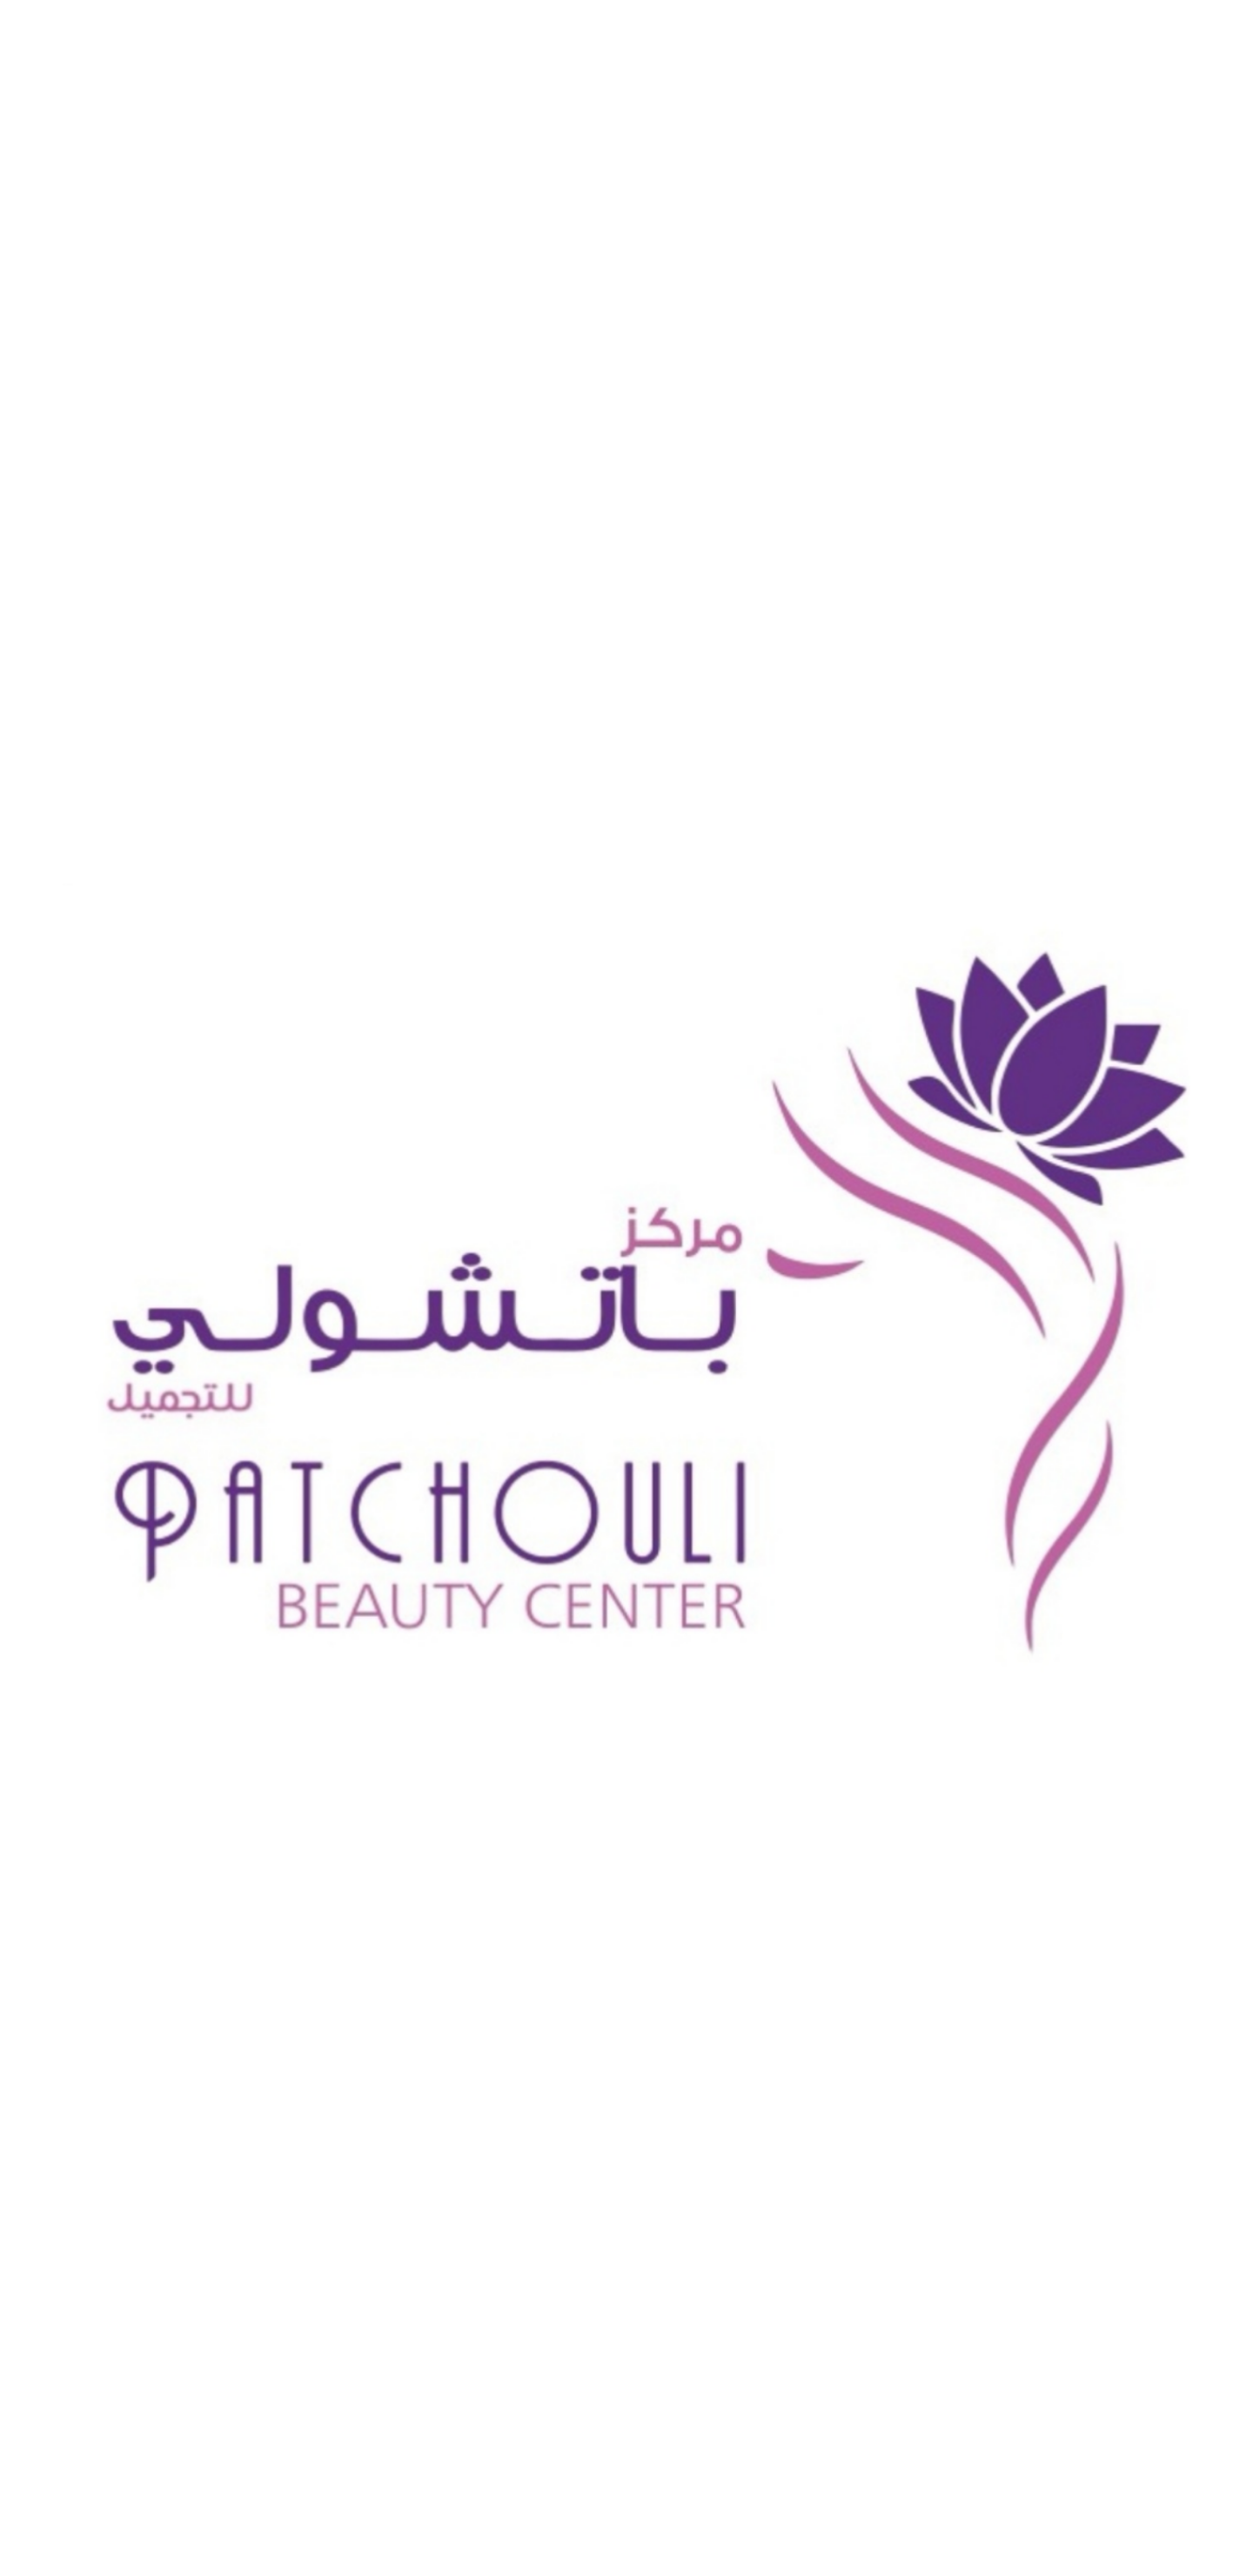 Patchouli Beauty Center